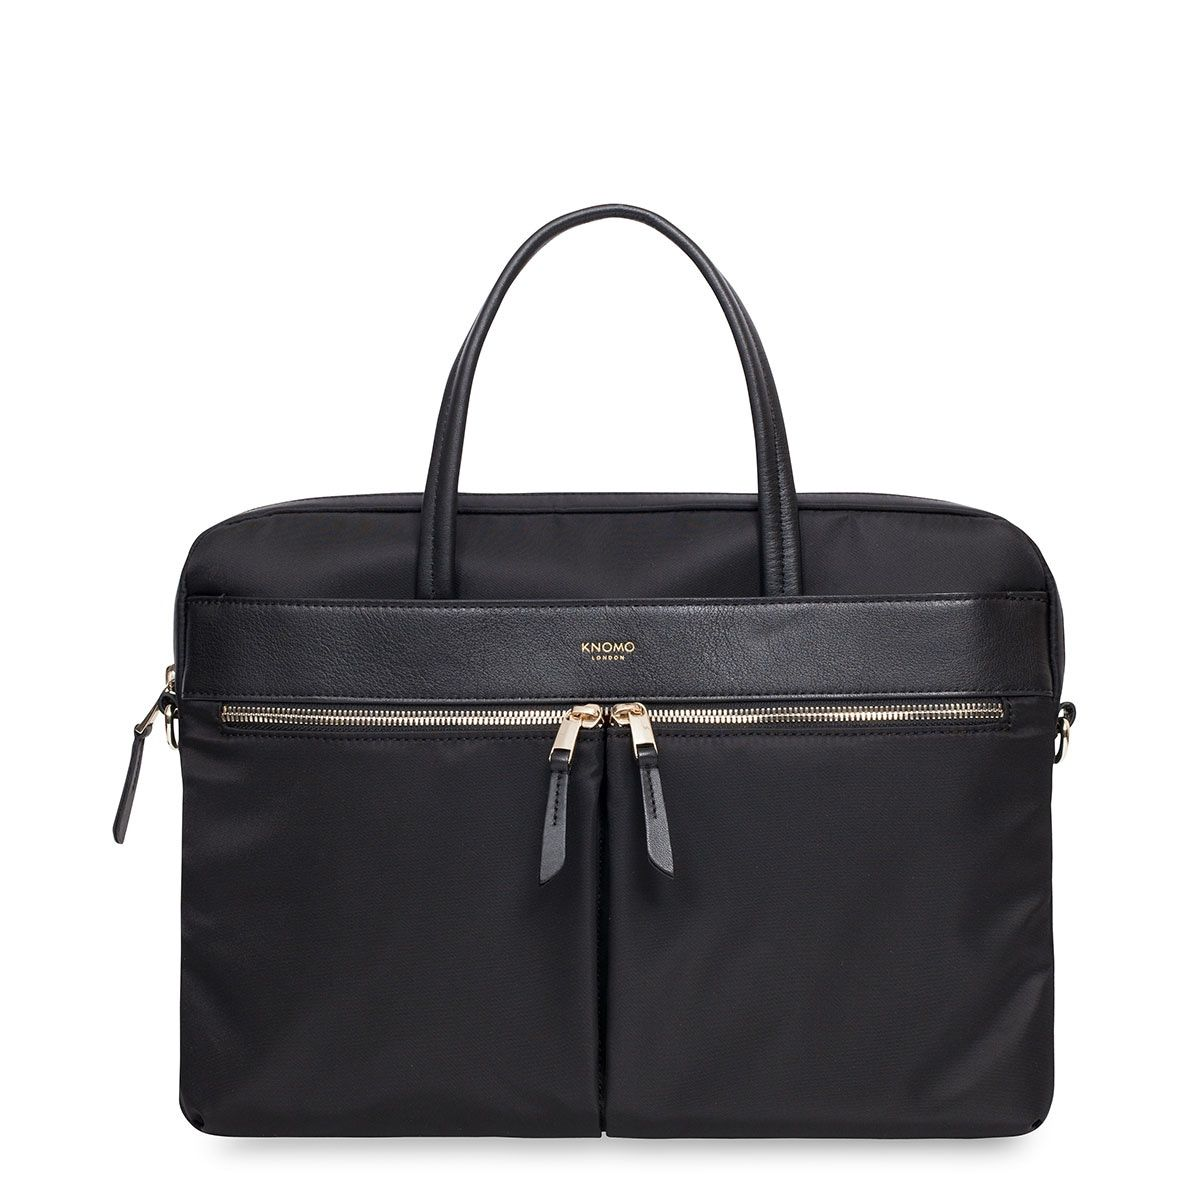 Laptoptas Knomo Hanover Slim Briefcase Black 14 inch